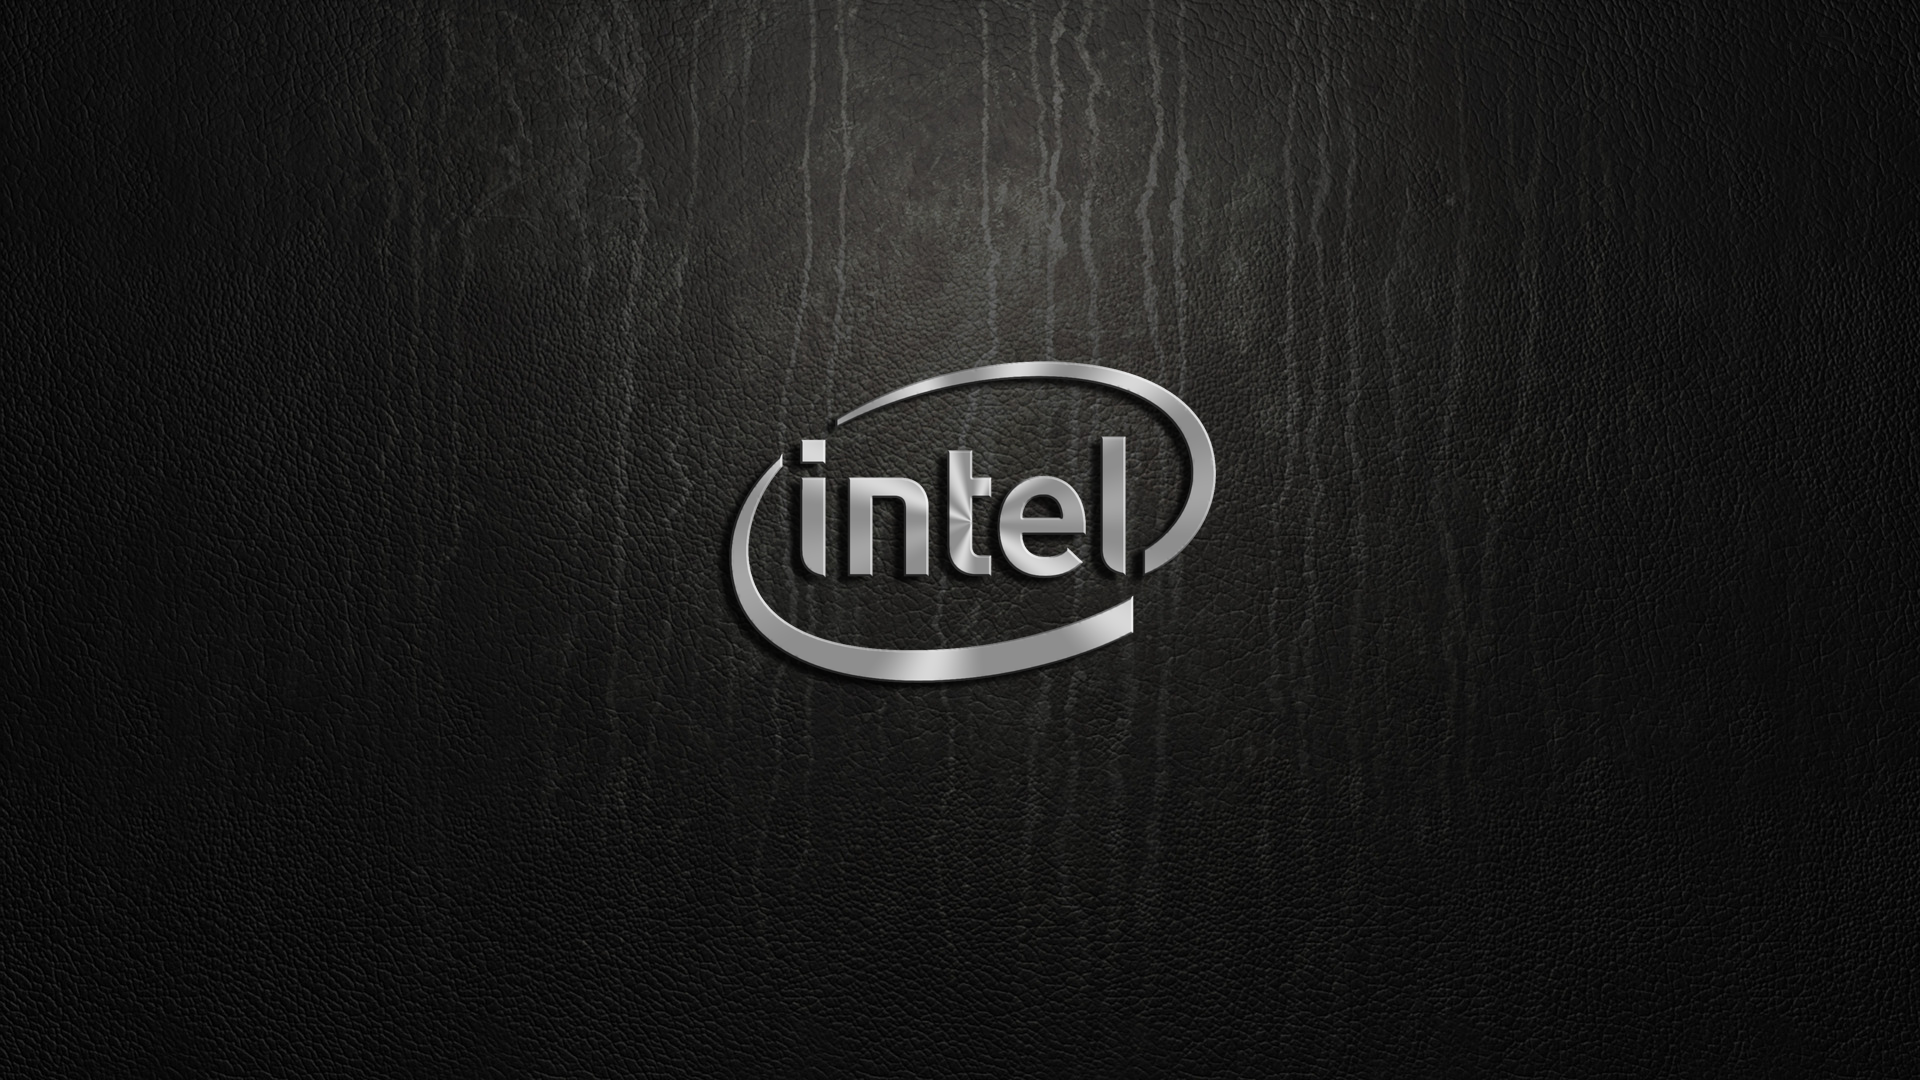 Intel Logo Wallpaper 10 1920x1080